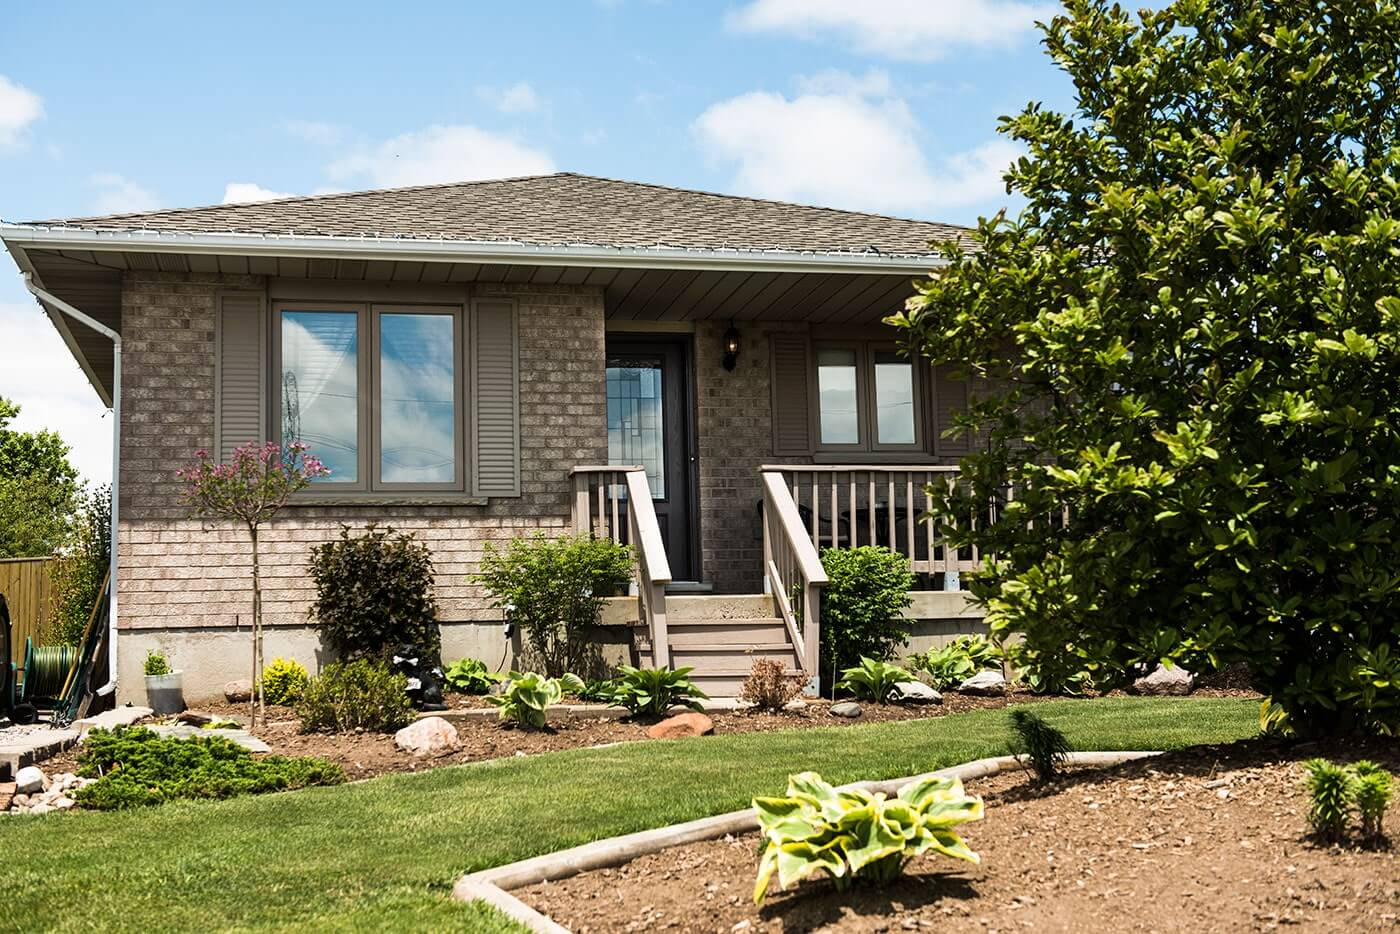 Front of a Small Bungalow Home Showcasing Multiple New Casements Windows